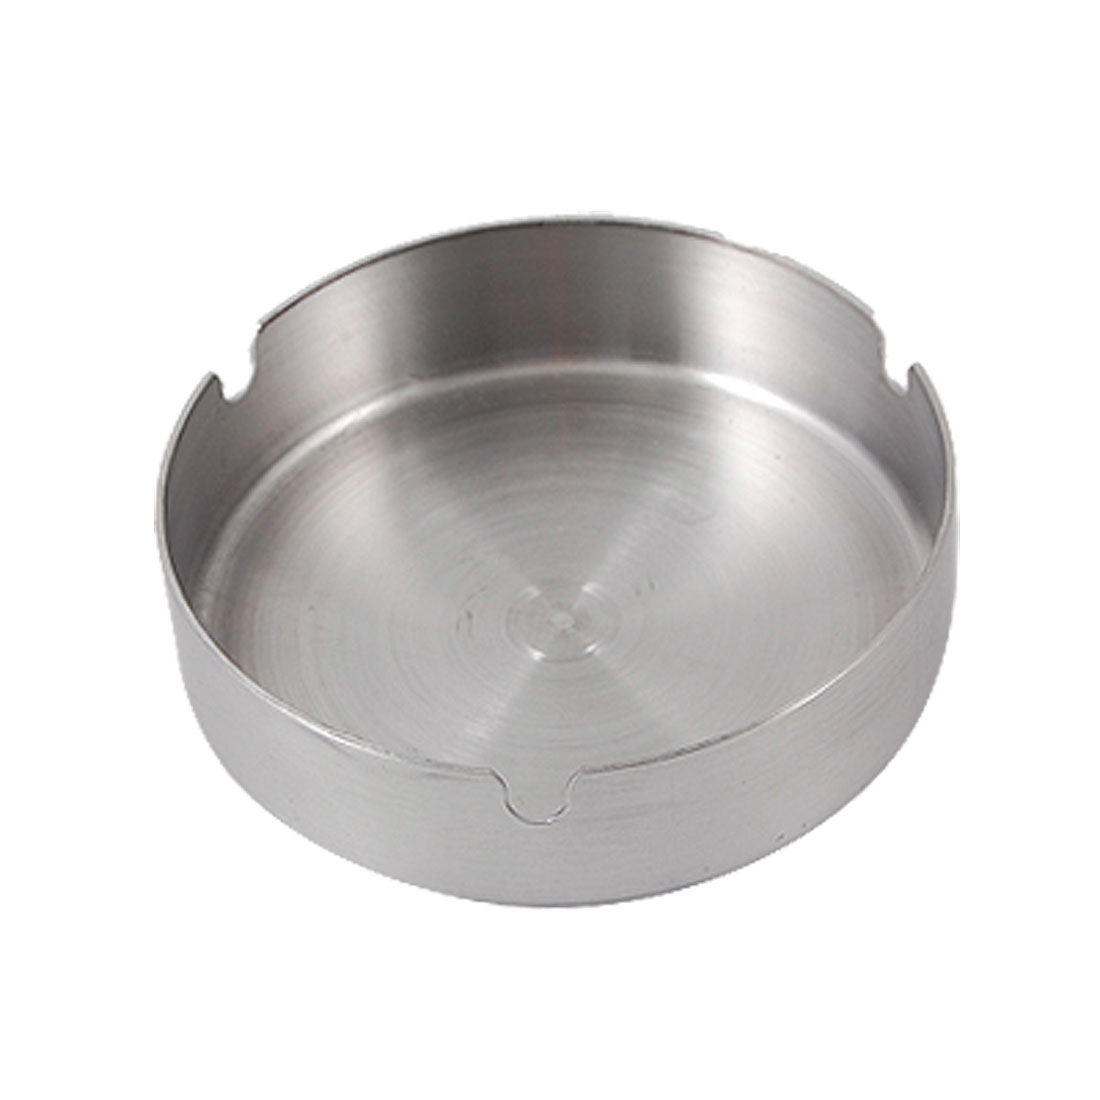 Tray Shaped Stainless Steel Cigaretter Holder Cigar Ashtray 3.9""